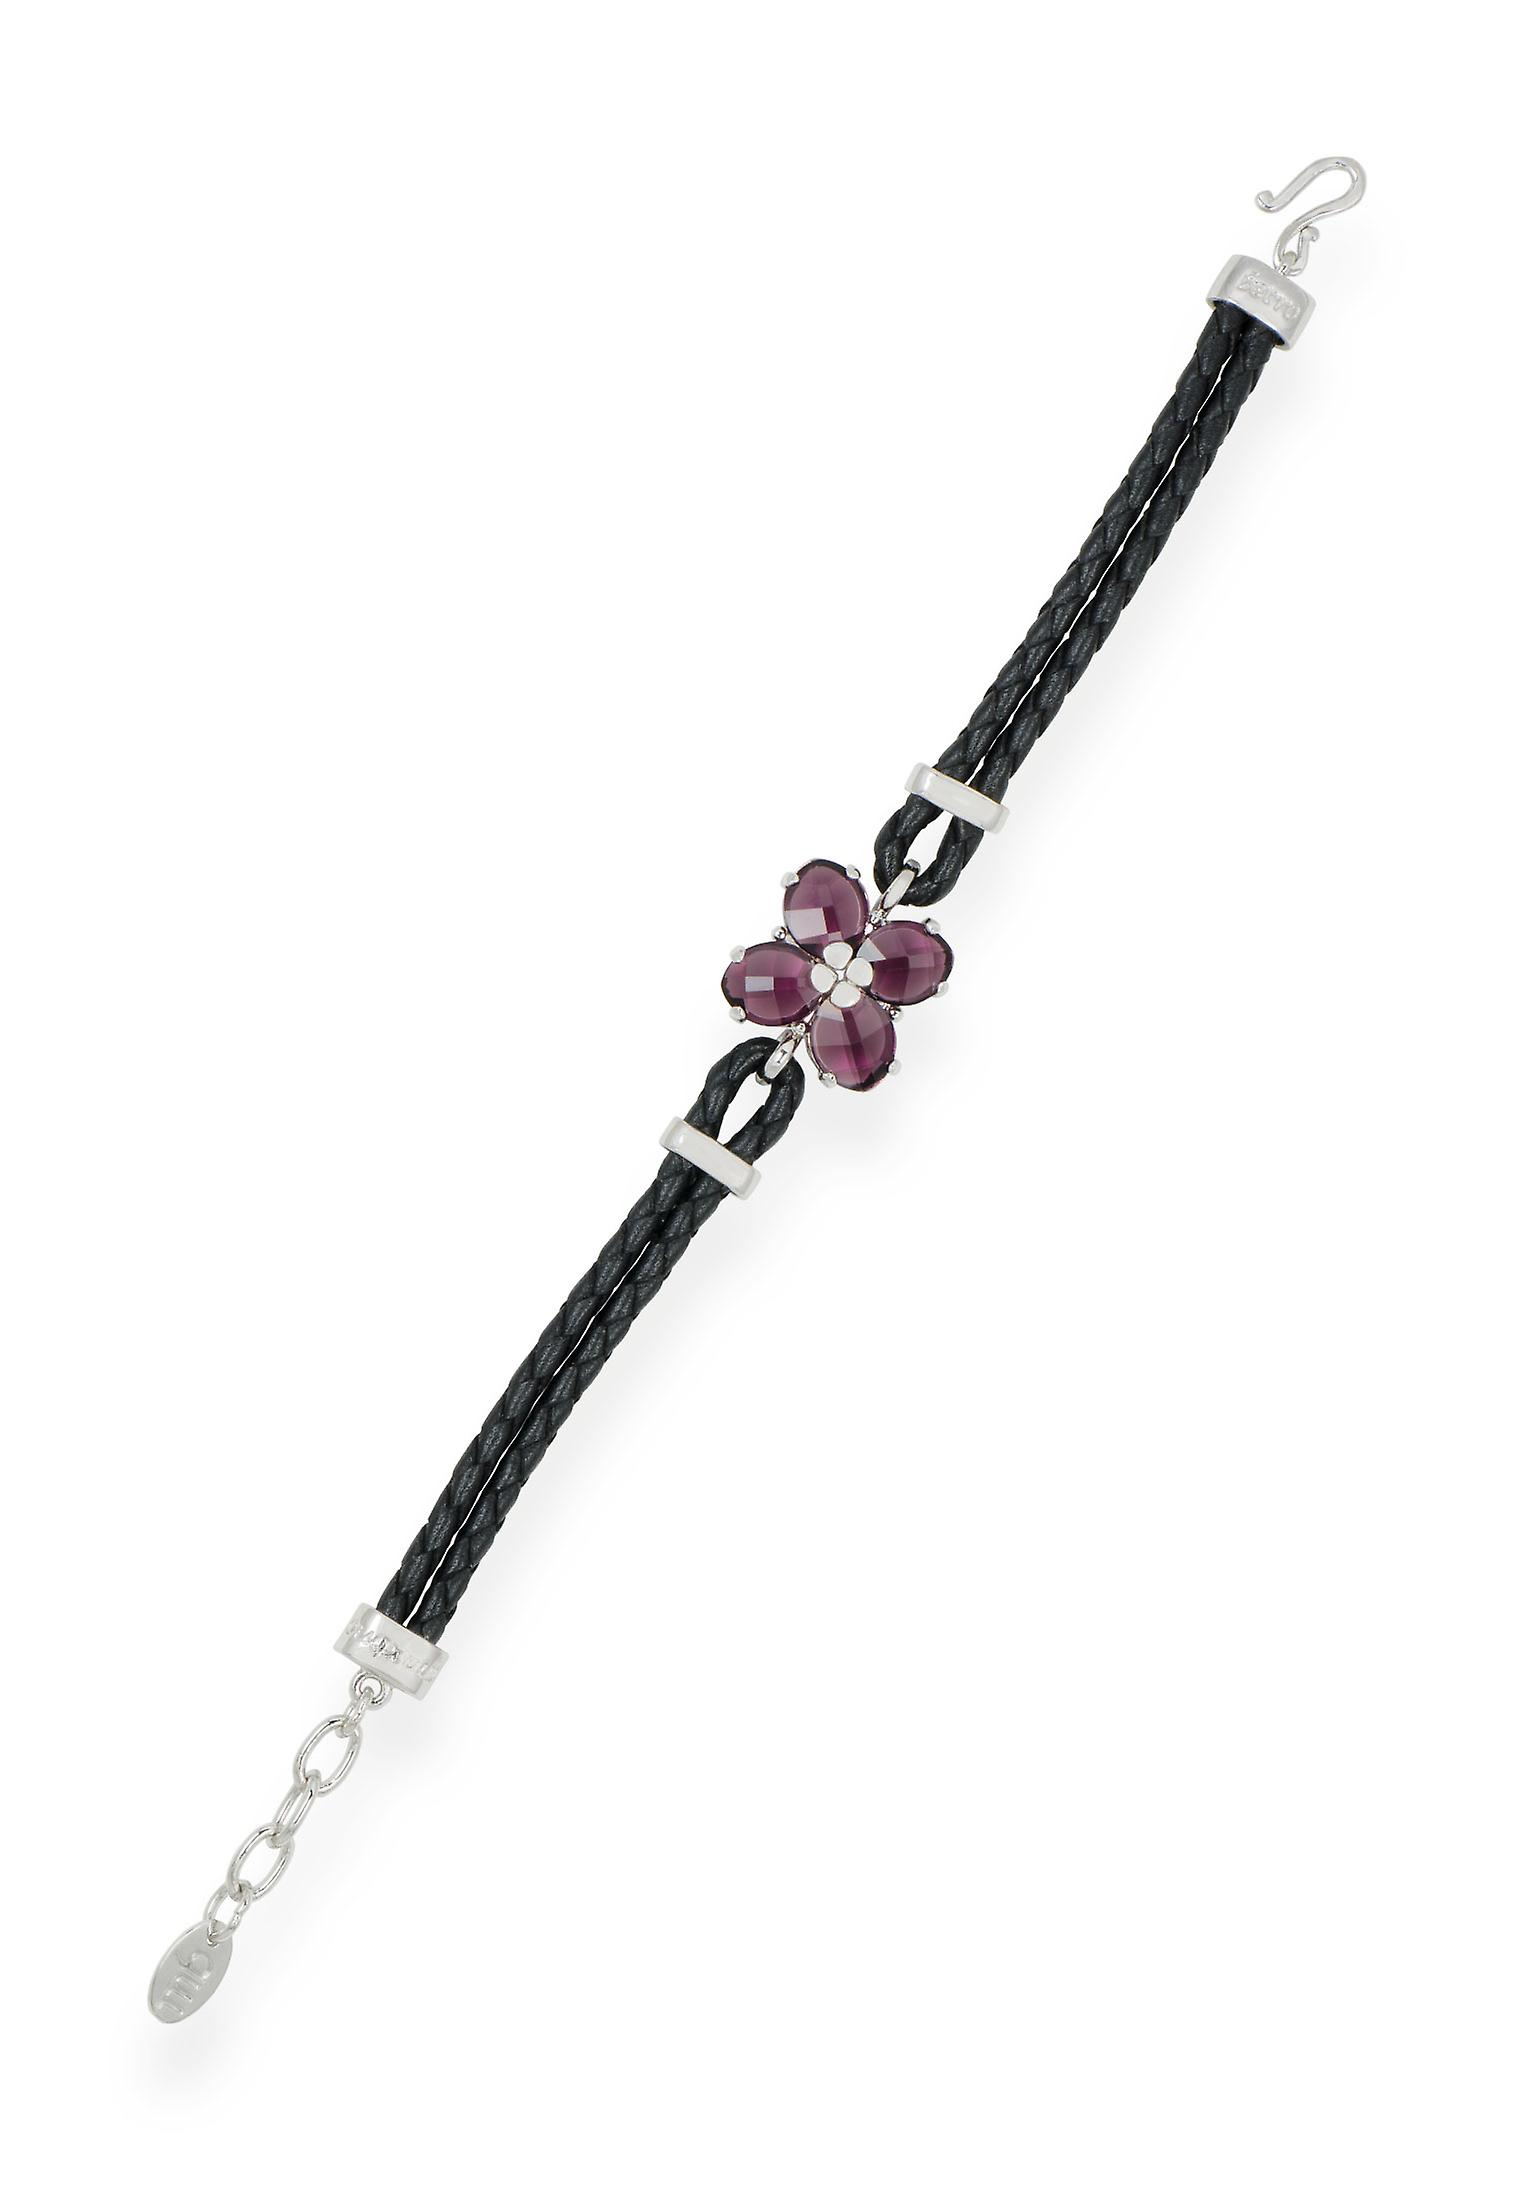 Multicolor bracelets with crystals from Swarovski 6320